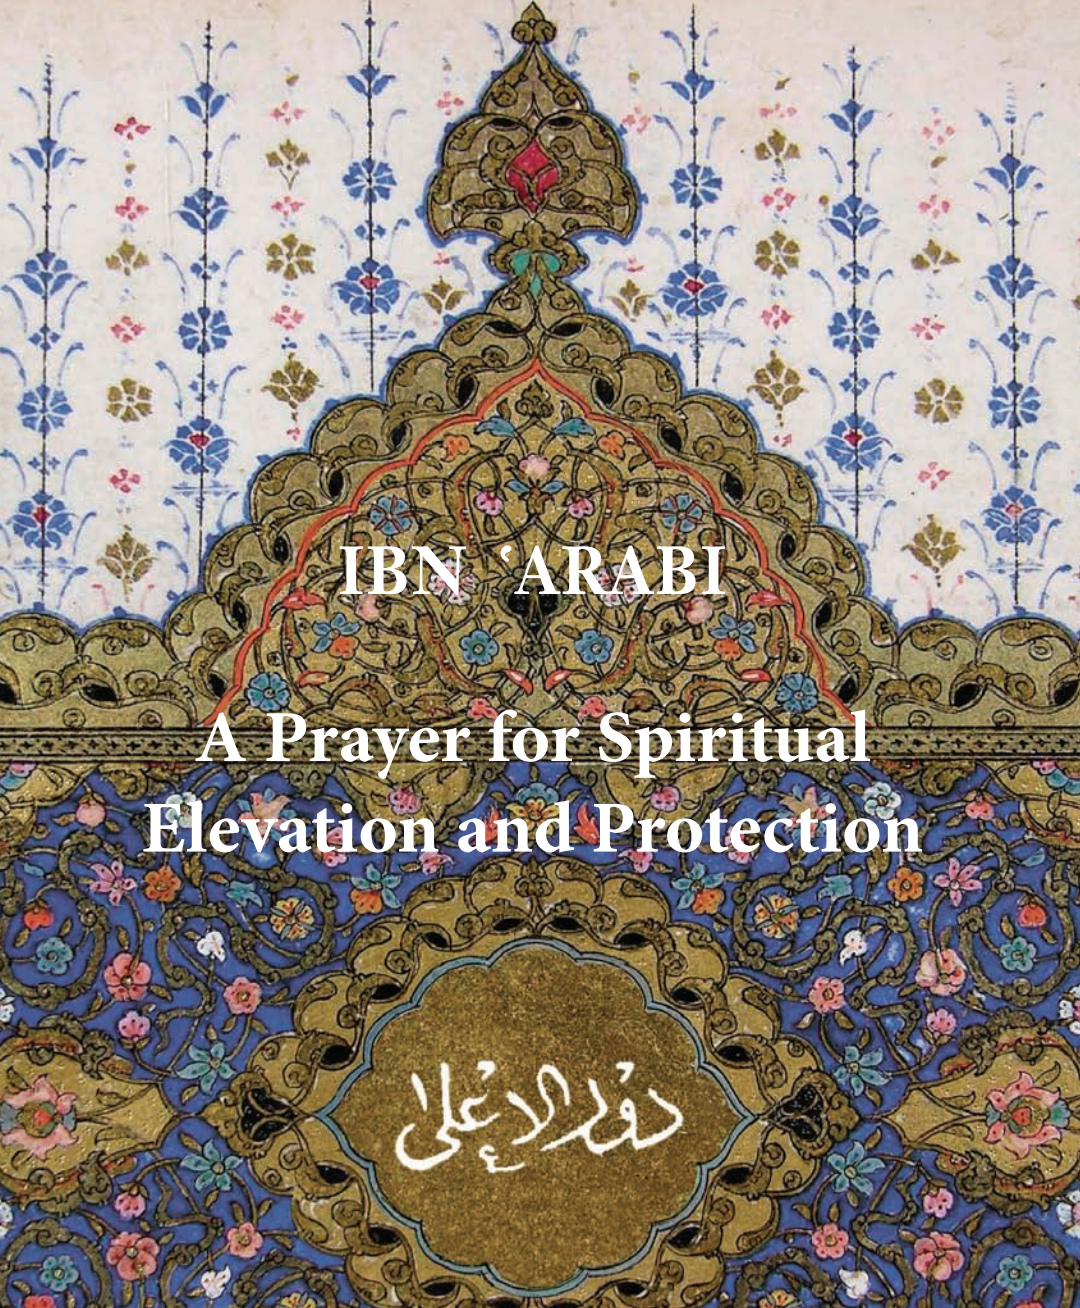 Ibn Arabi – A Prayer for Spiritual Elevation and Protection